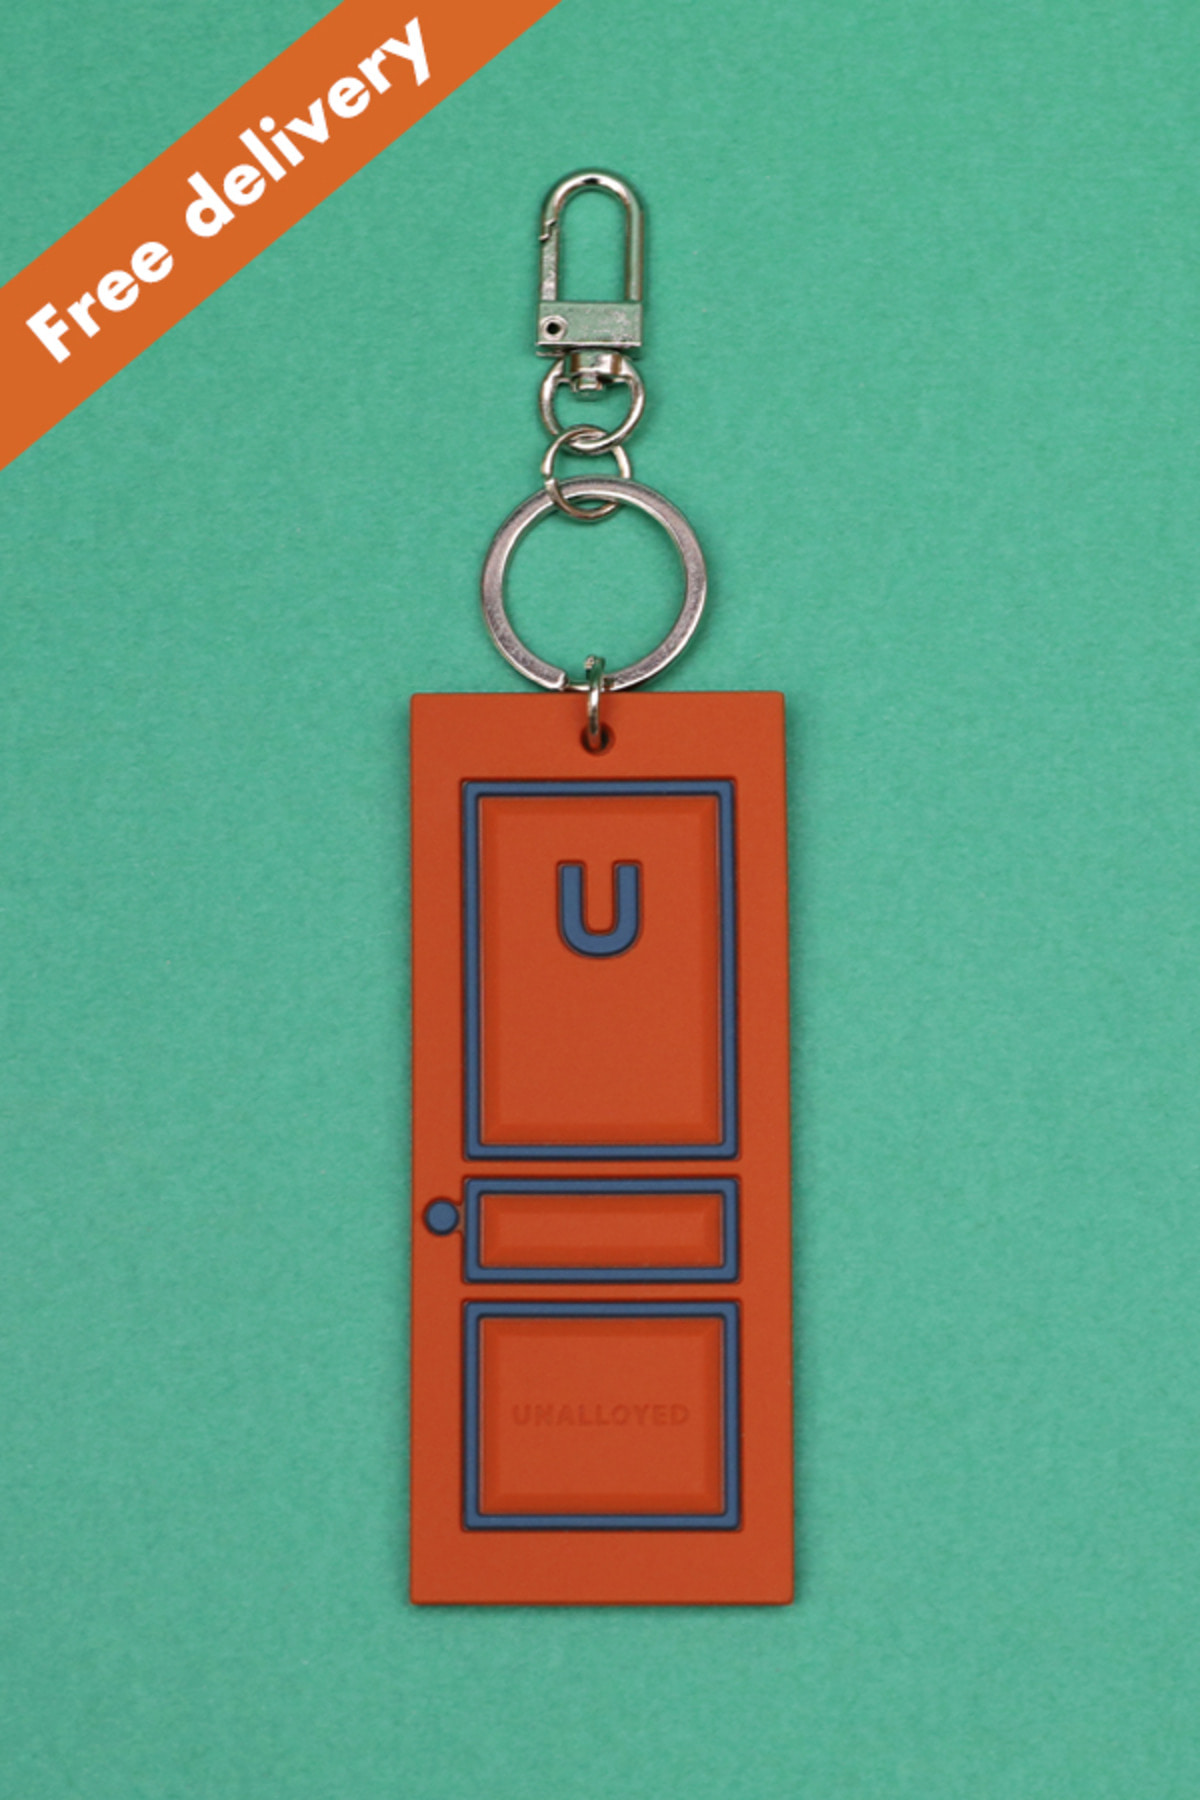 [GOODS] DOOR KEY HOLDER / ORANGE